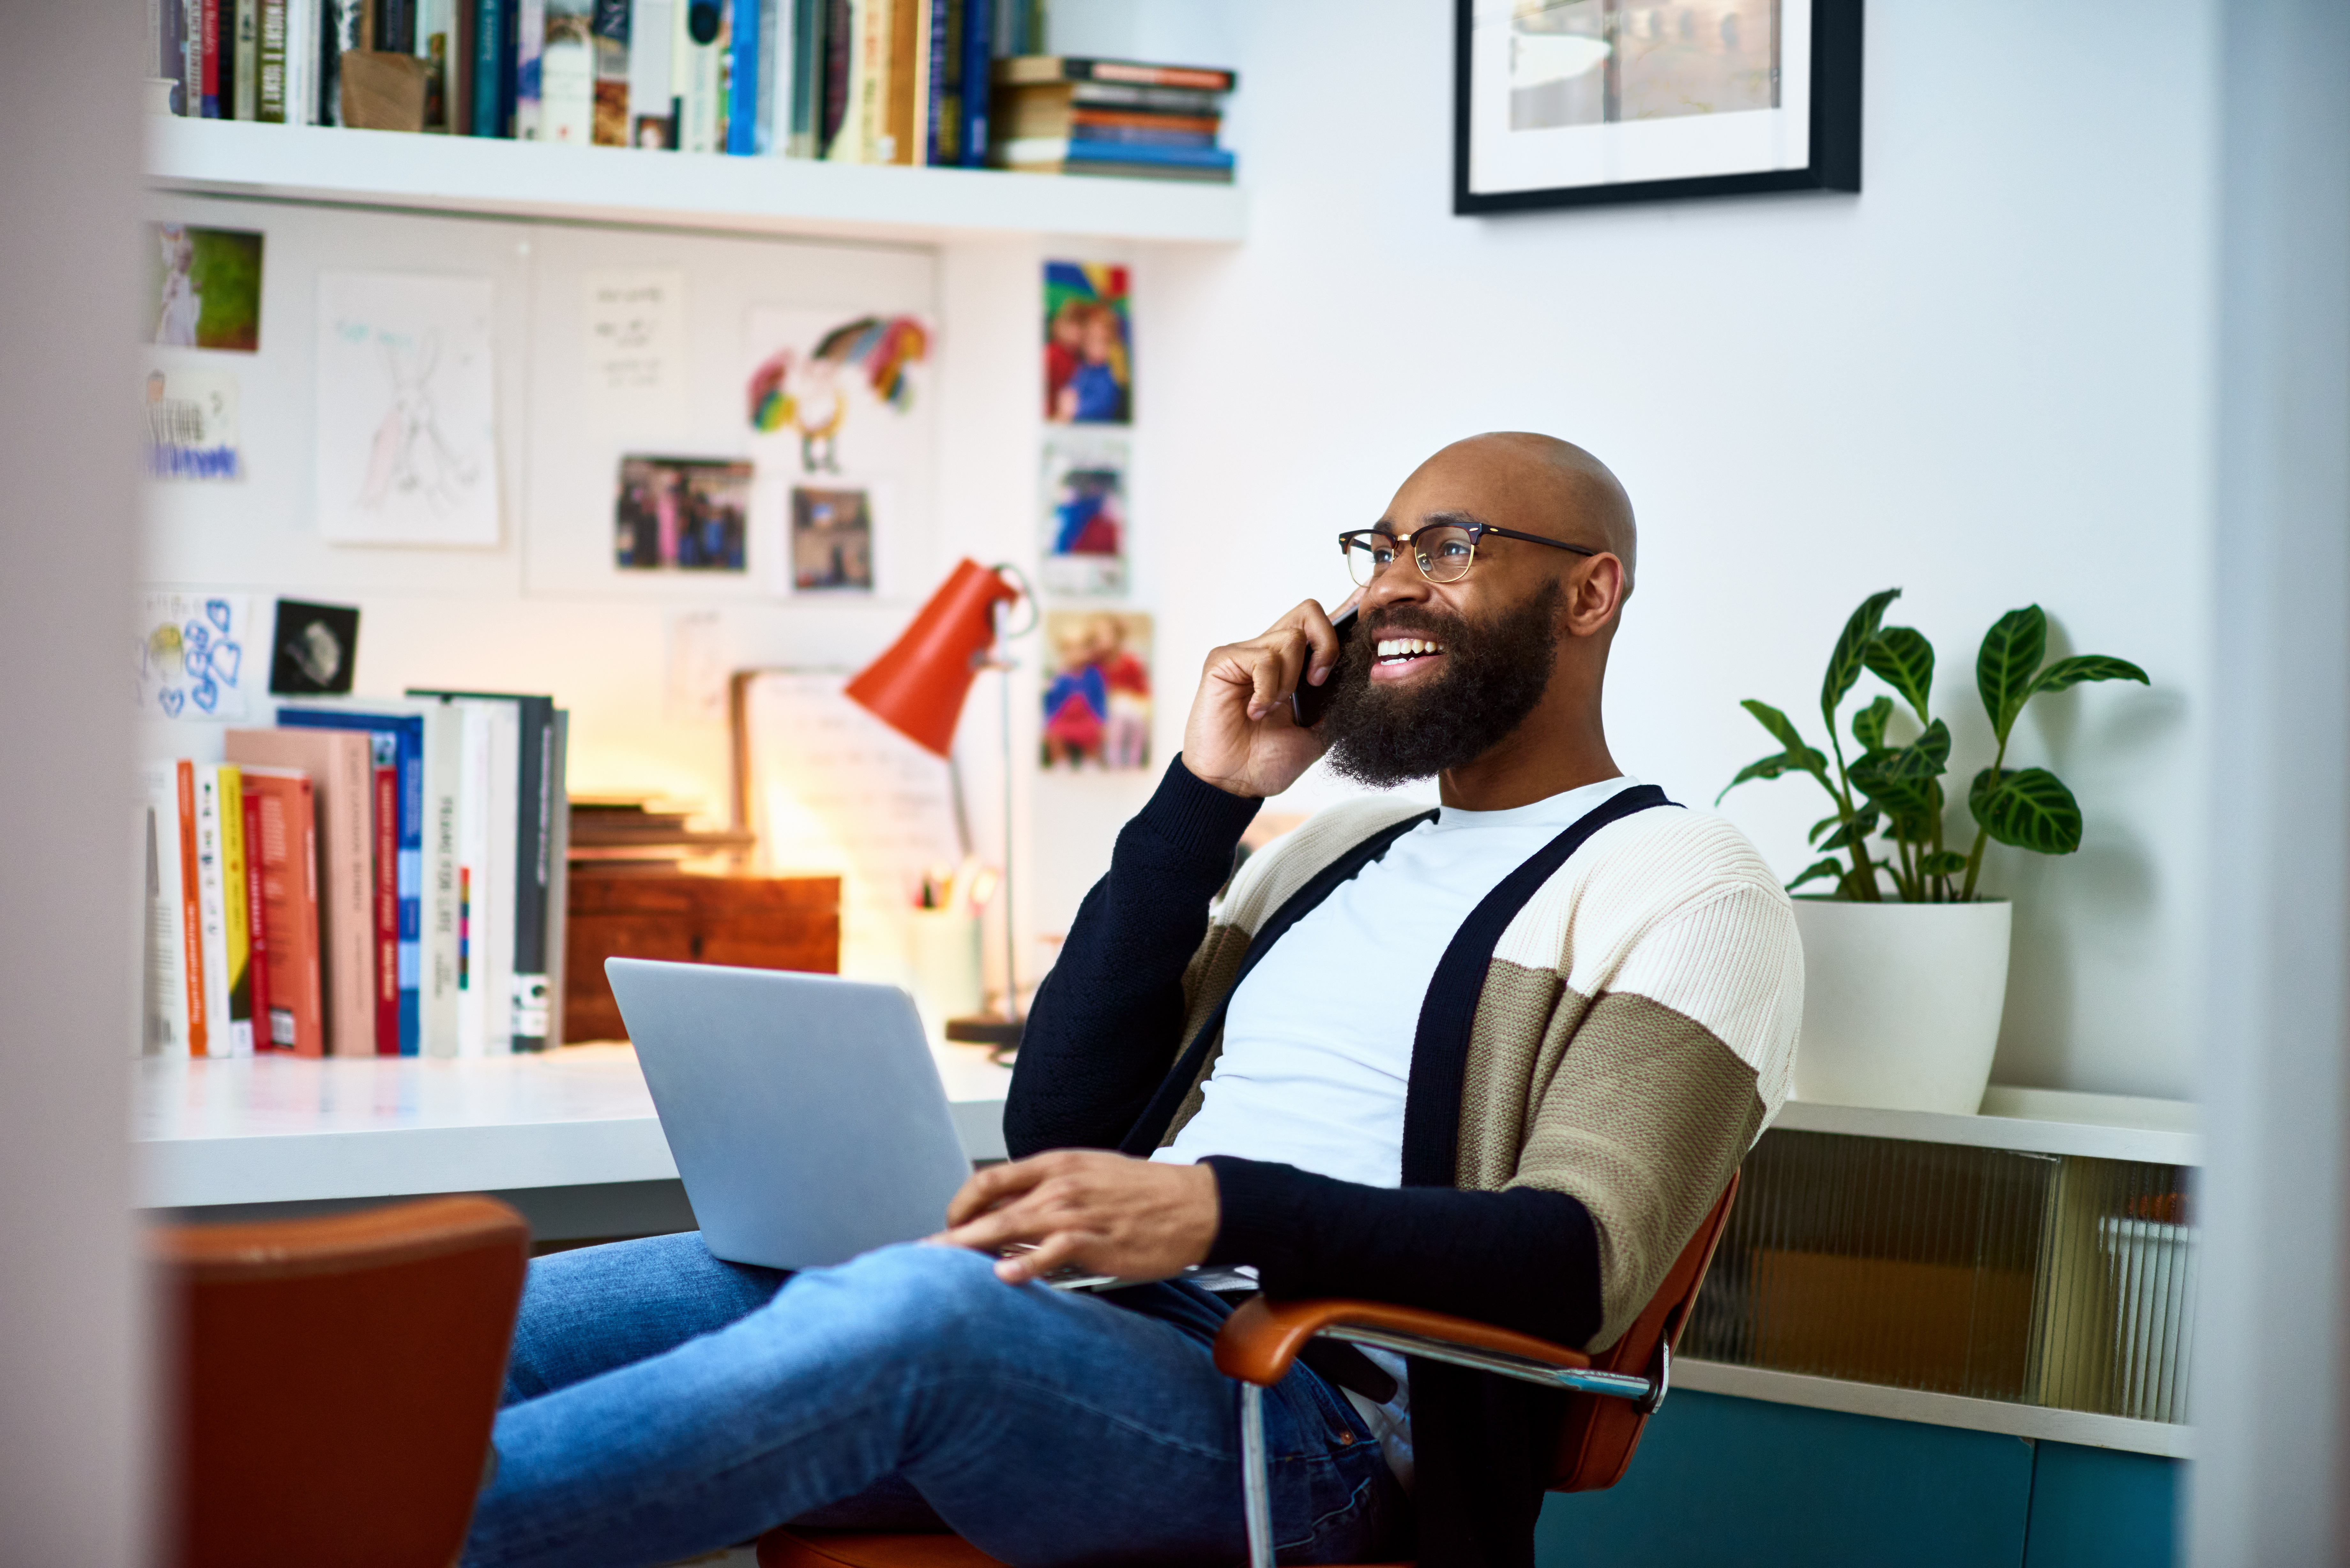 7 Quick Ways to Improve Your Home Office Space